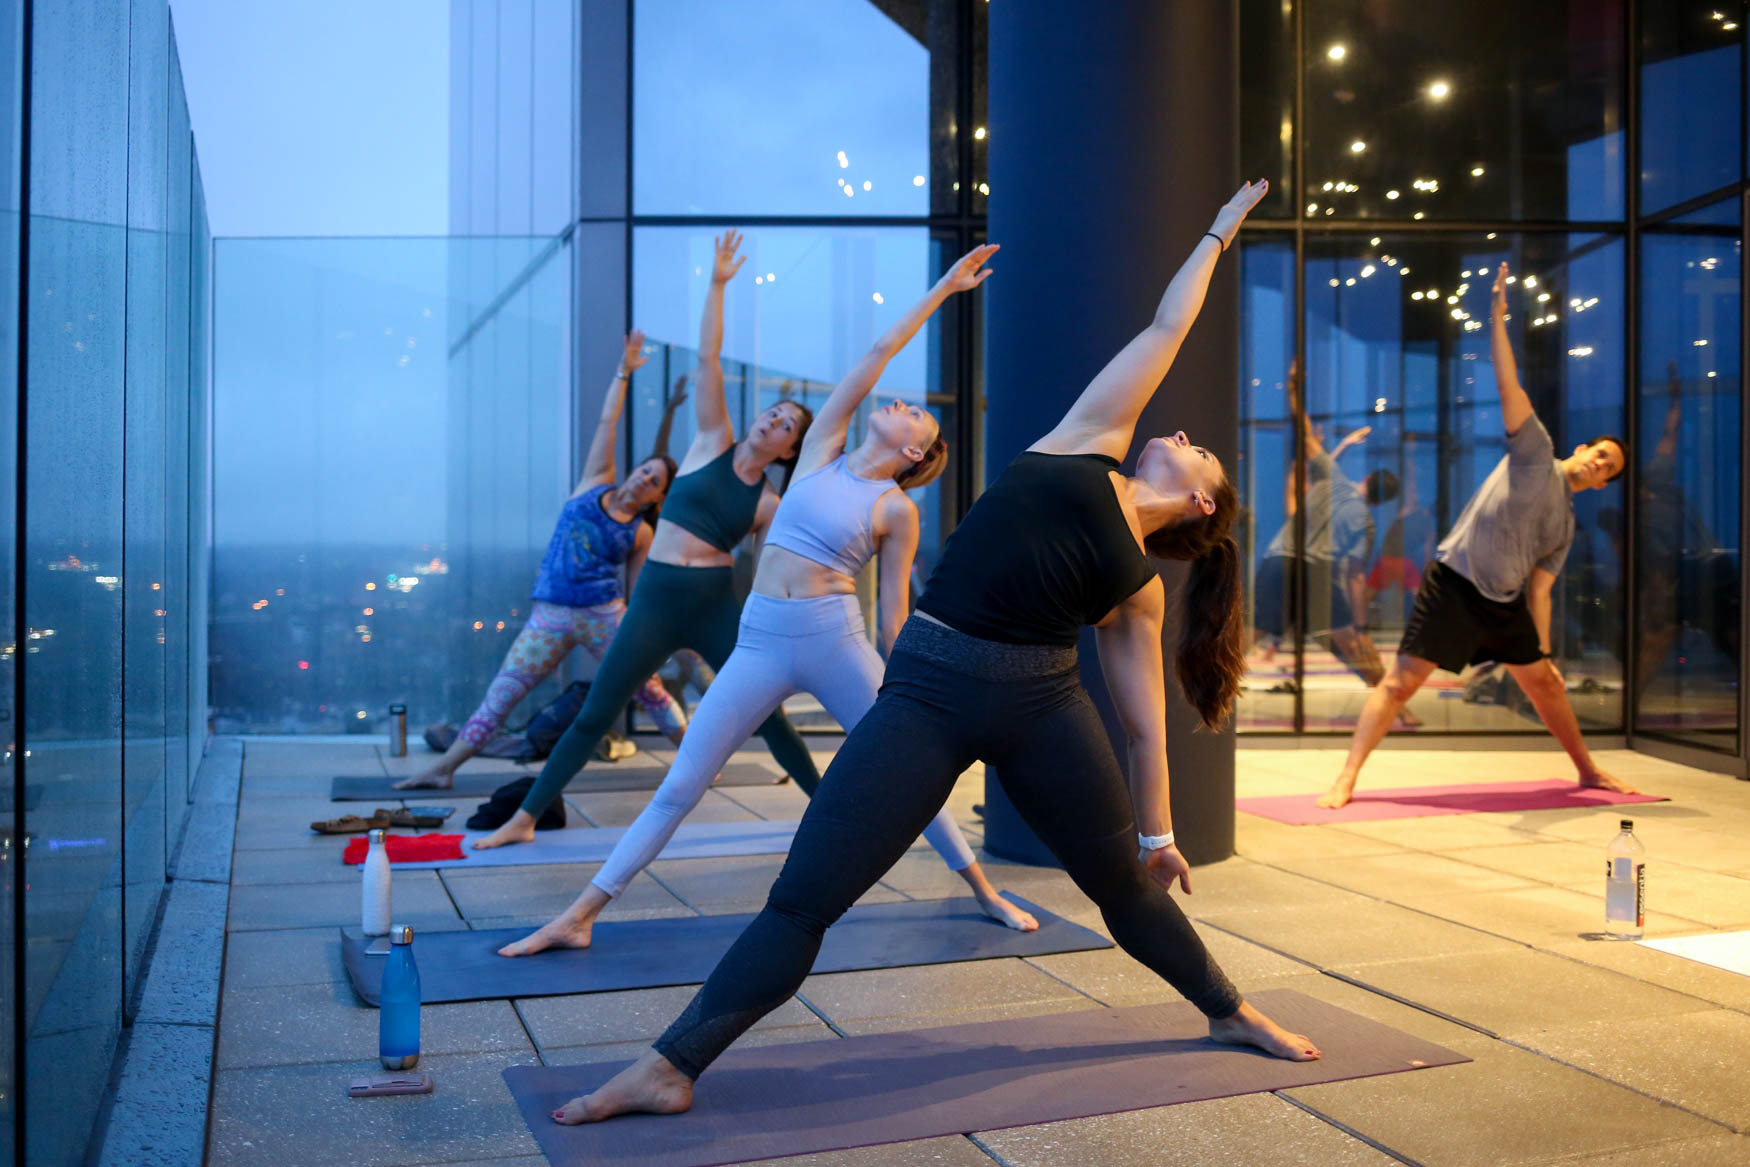 It may be hard to motivate yourself to go to yoga before dawn, but getting out of bed before the sun emerges might get a little easier if you know you're going to be rewarded with a gorgeous sunrise. The Observation Deck at CEB Tower will be hosting monthly sunrise yoga sessions. The Observation Deck is in the Rosslyn neighborhood of Arlington; it offers panoramic views of D.C., whether you're on the outdoor deck or enjoying the view behind floor-to-ceiling windows. The class, which costs $20,{ } starts before dawn, but you'll be rewarded with an unforgettable view. (Amanda Andrade-Rhoades/DC Refined)